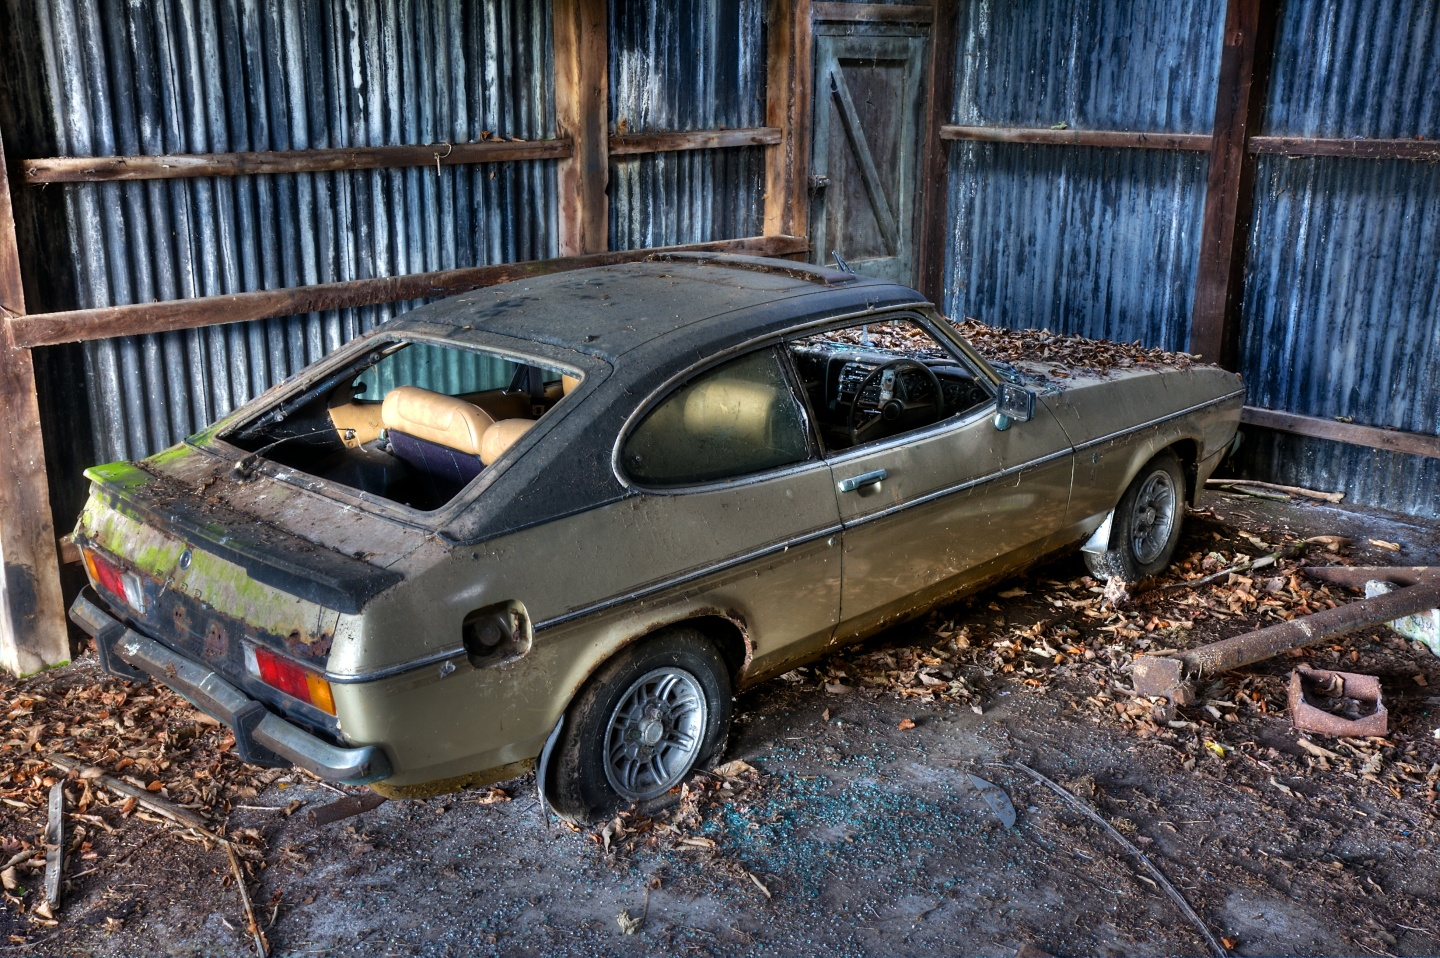 Ford Capri in decay